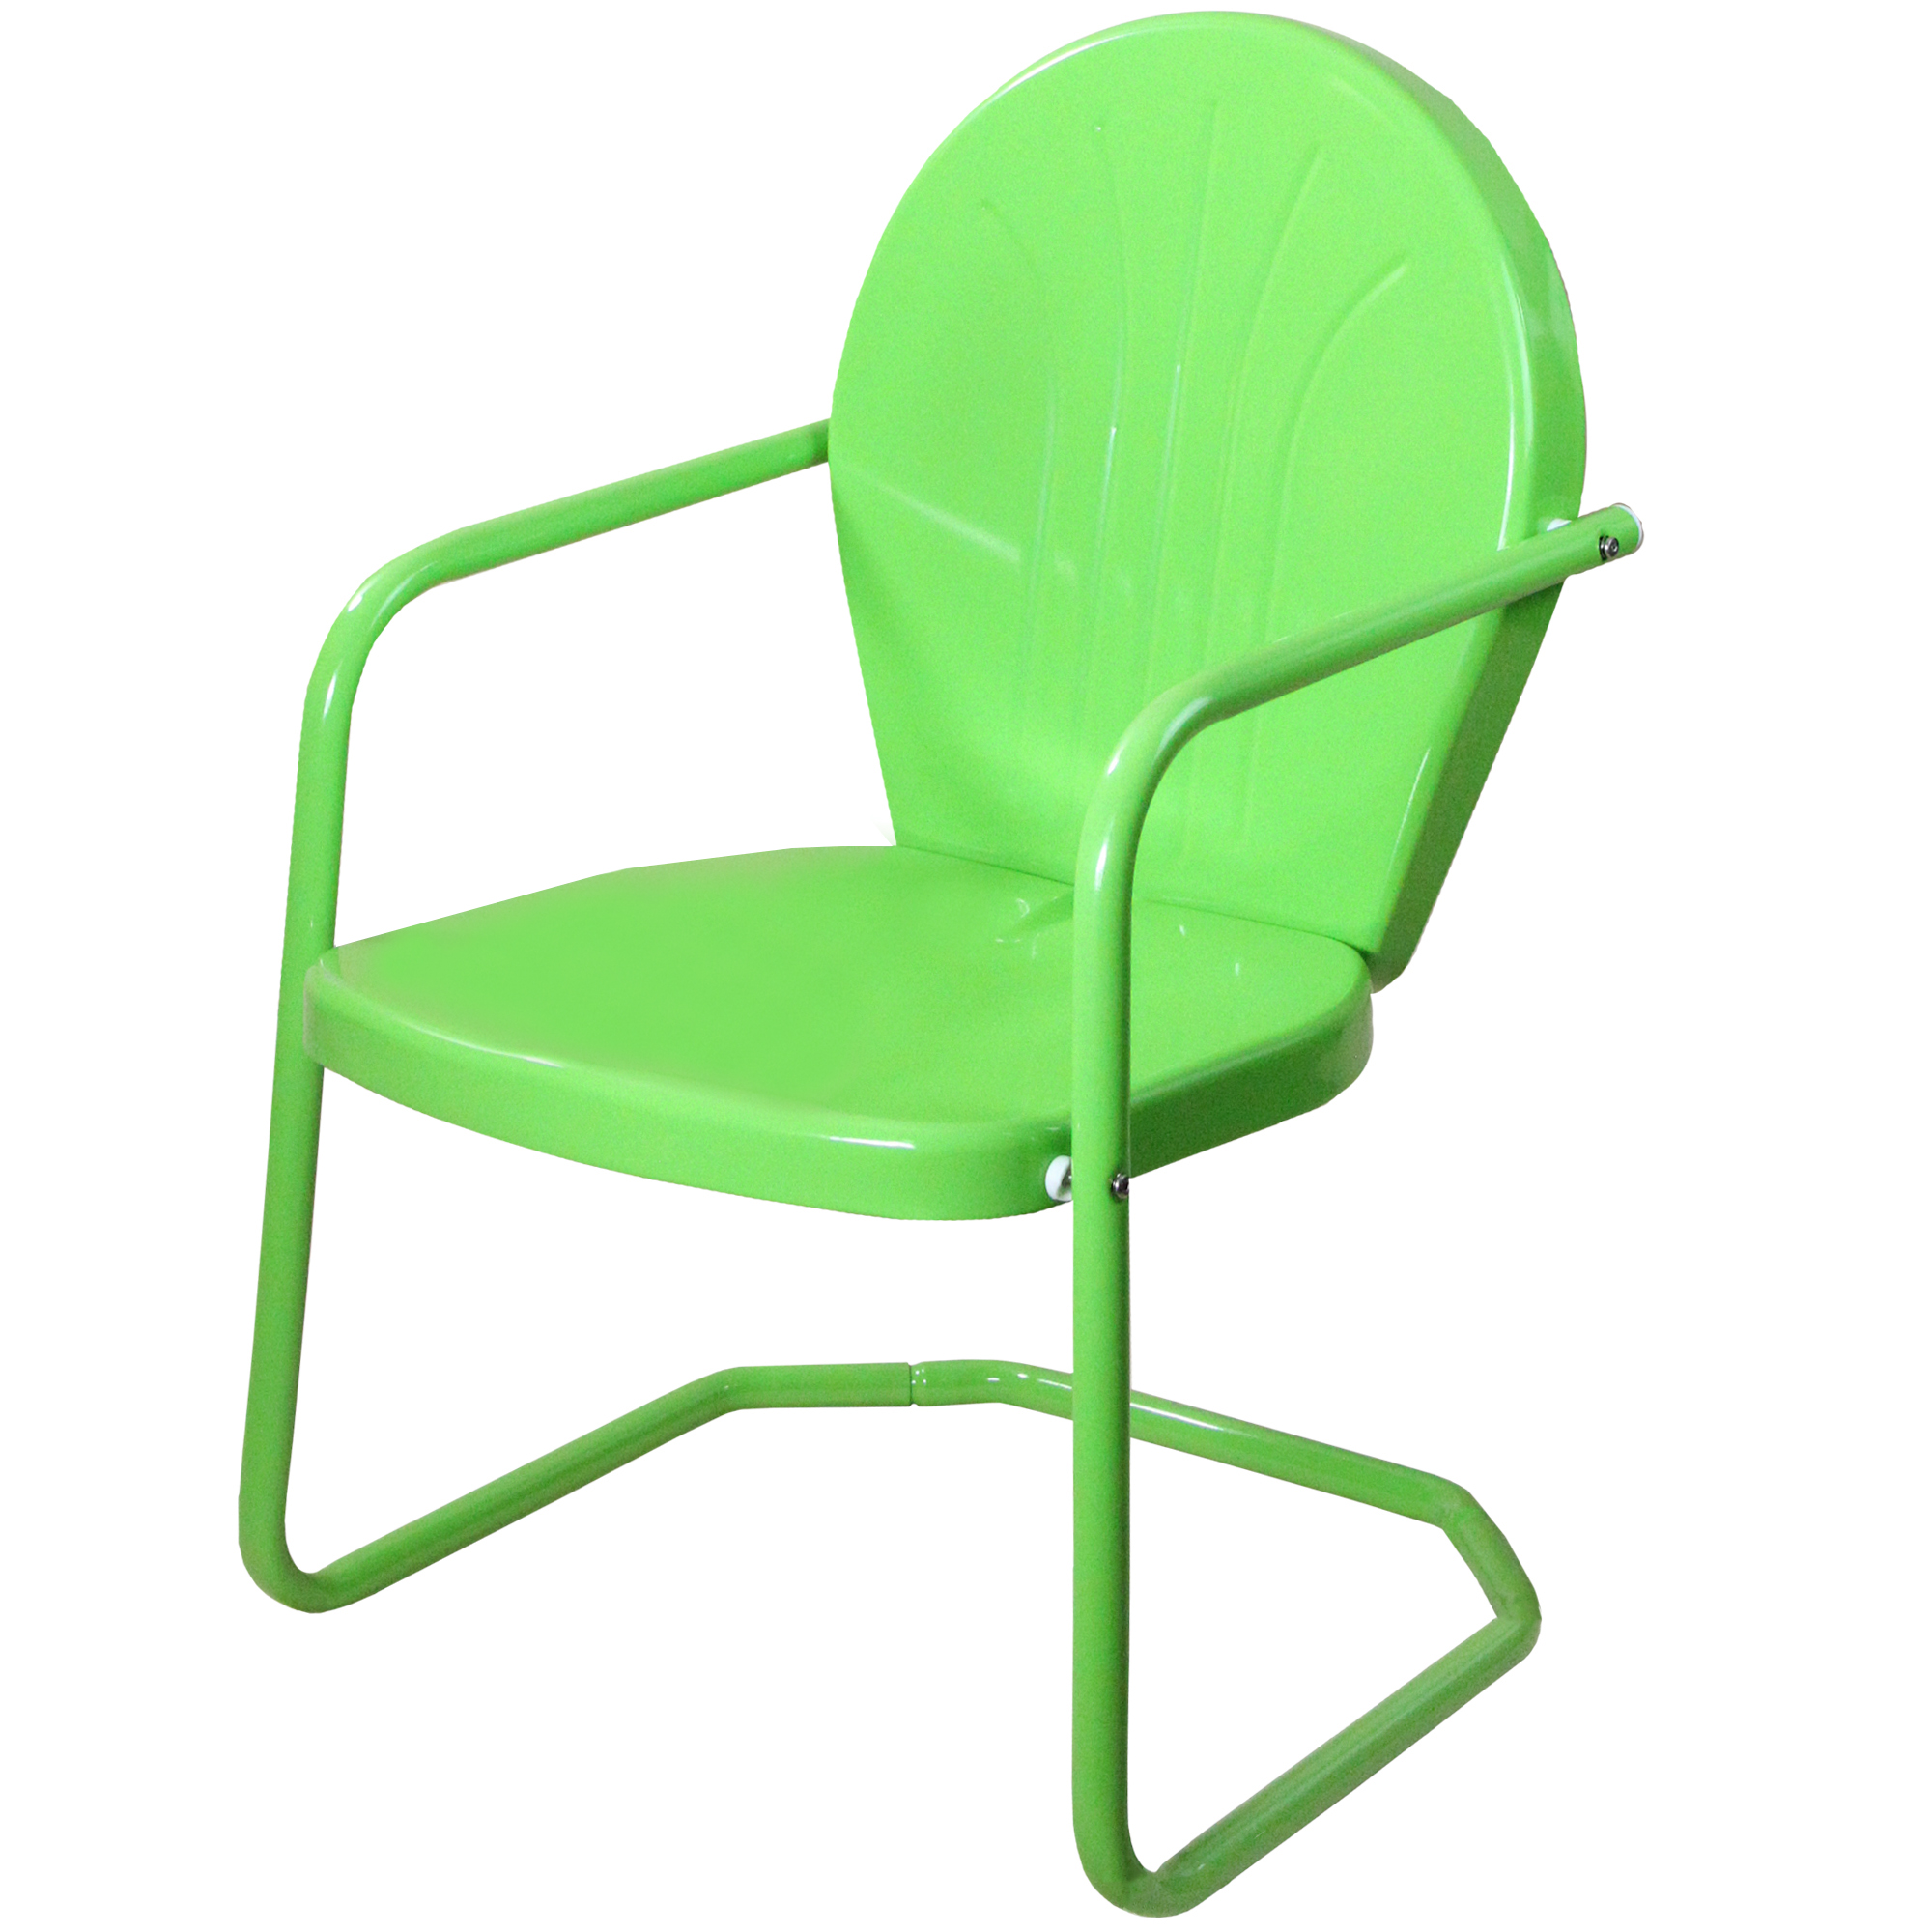 Outdoor Retro Metal Tulip Armchair, Lime Green